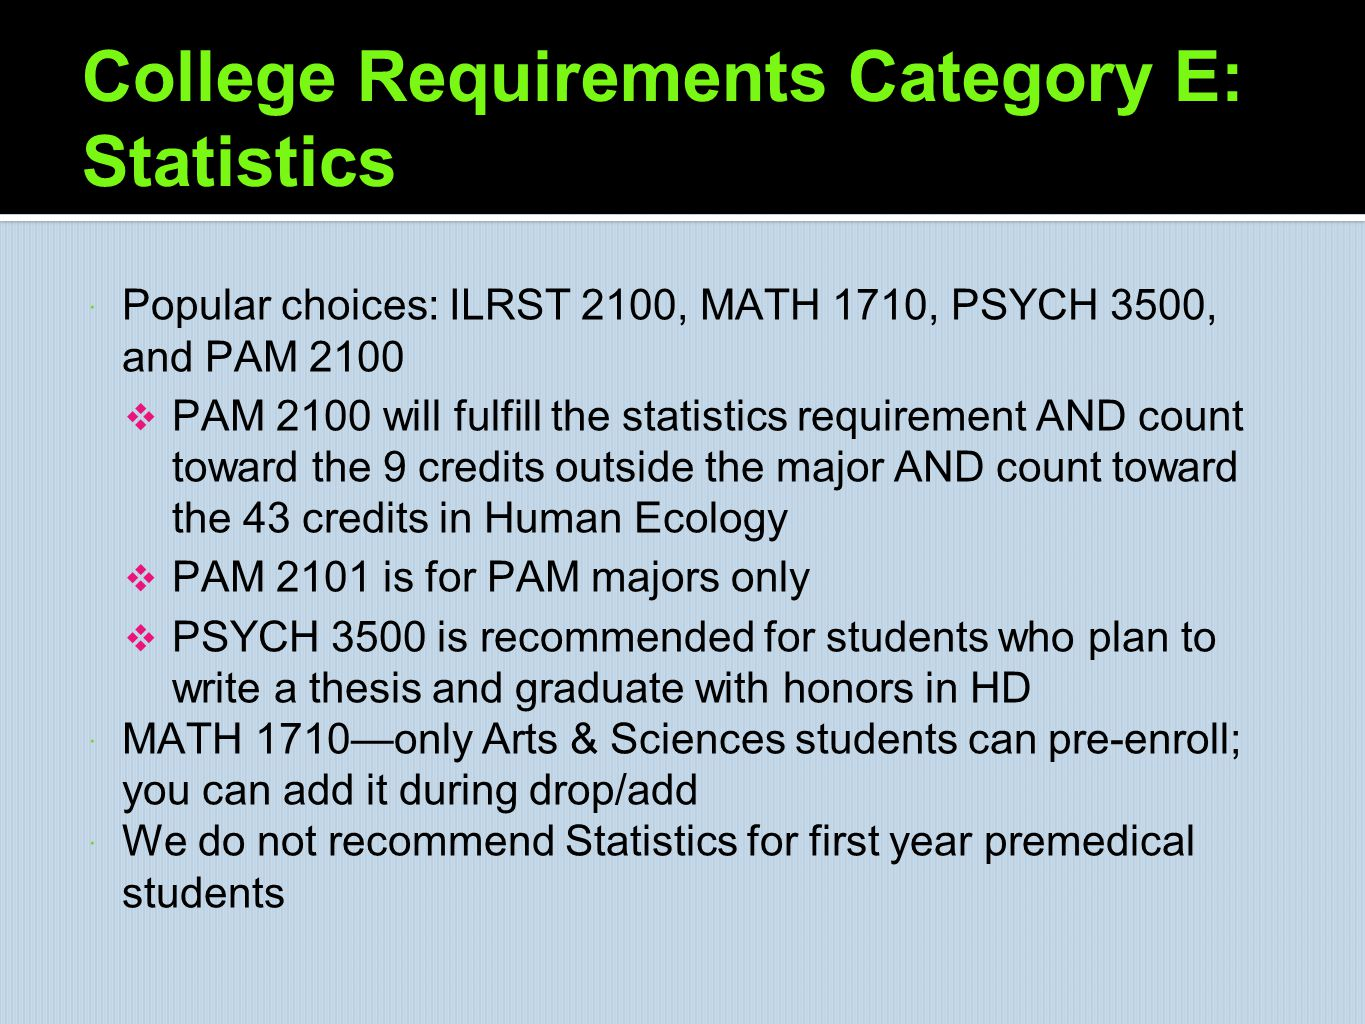 College Requirements Category E: Statistics